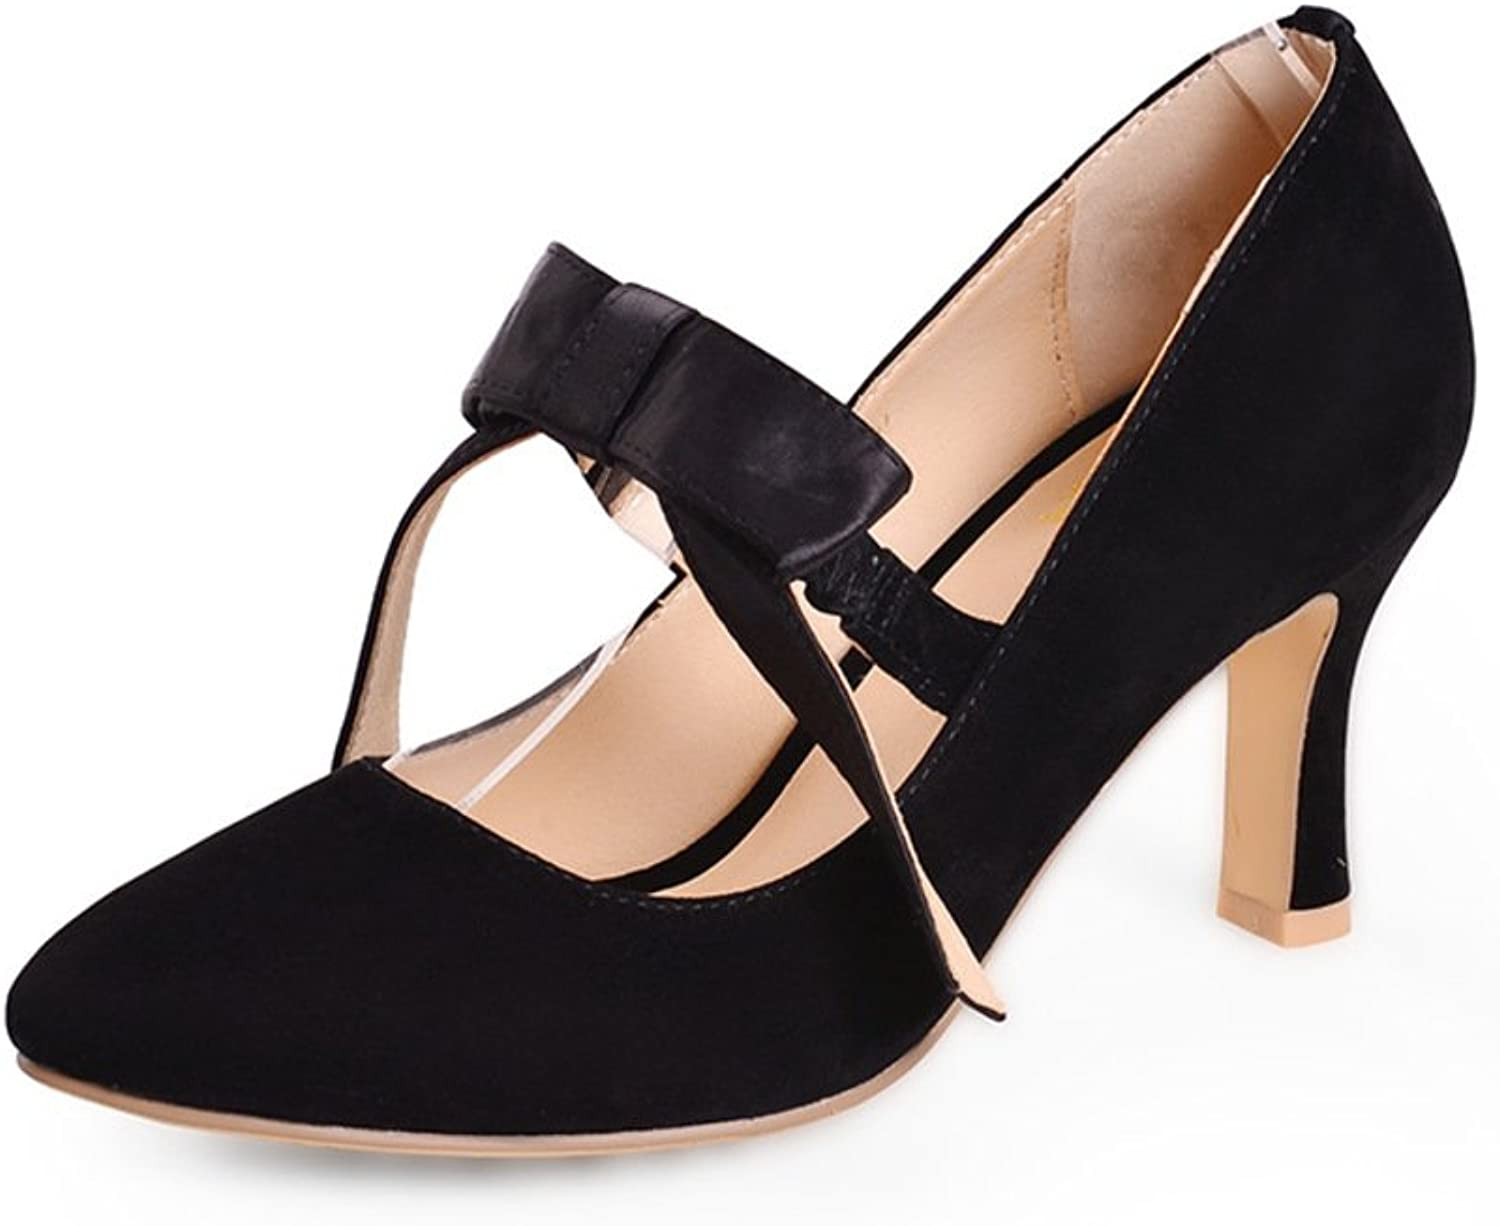 WLJSLLZYQ Fashion high Heel shoes Fine with a Sweet Bow shoes in Spring